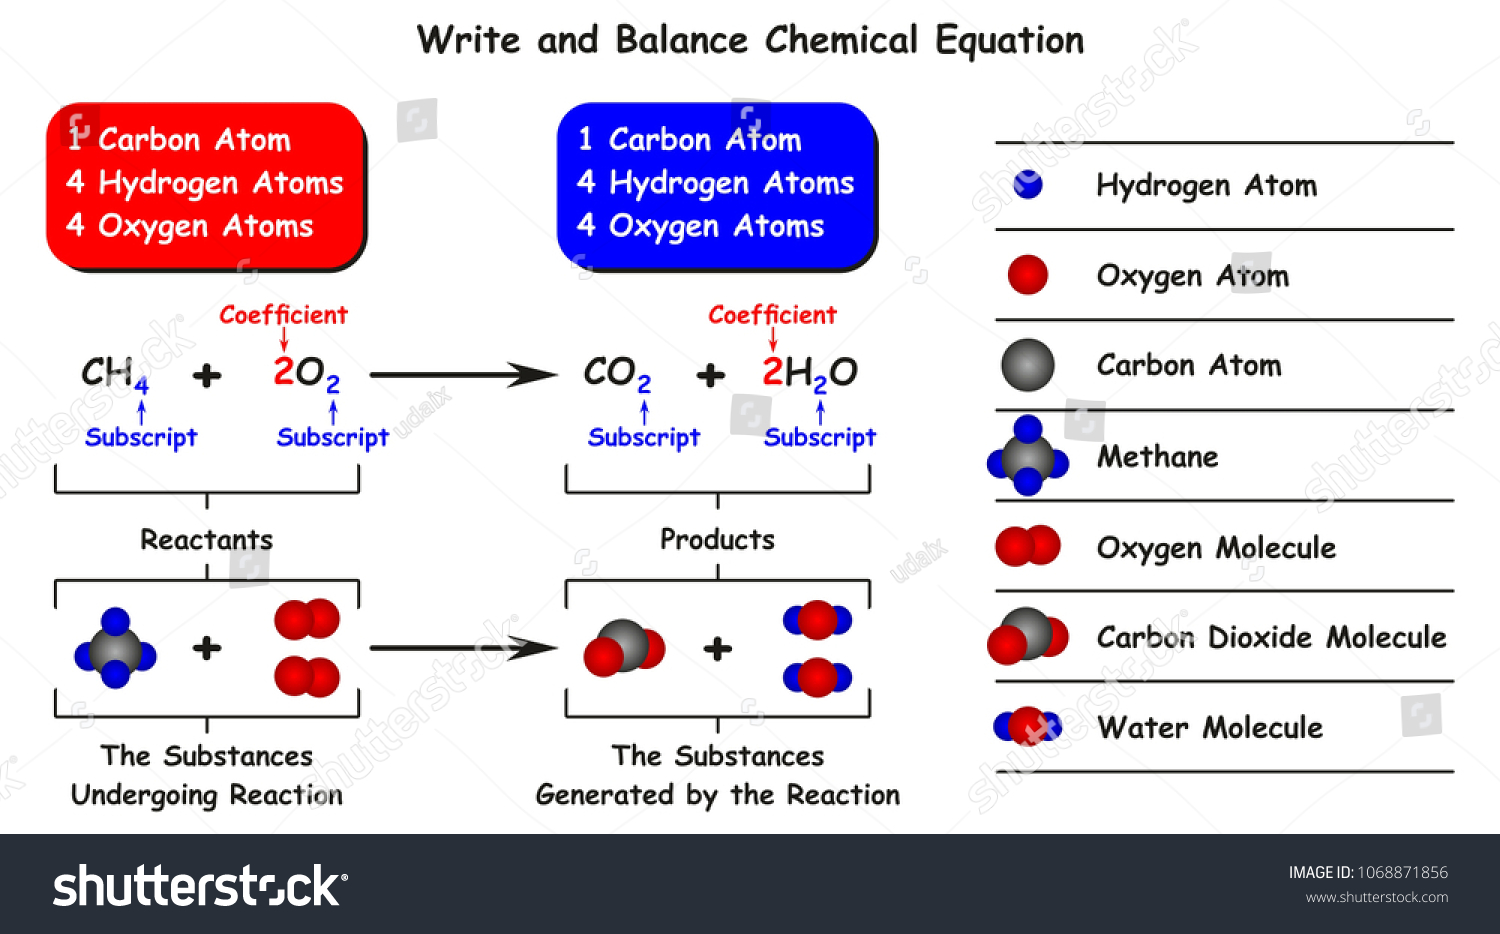 hight resolution of write and balance chemical equation infographic diagram with example of reaction of methane with oxygen as